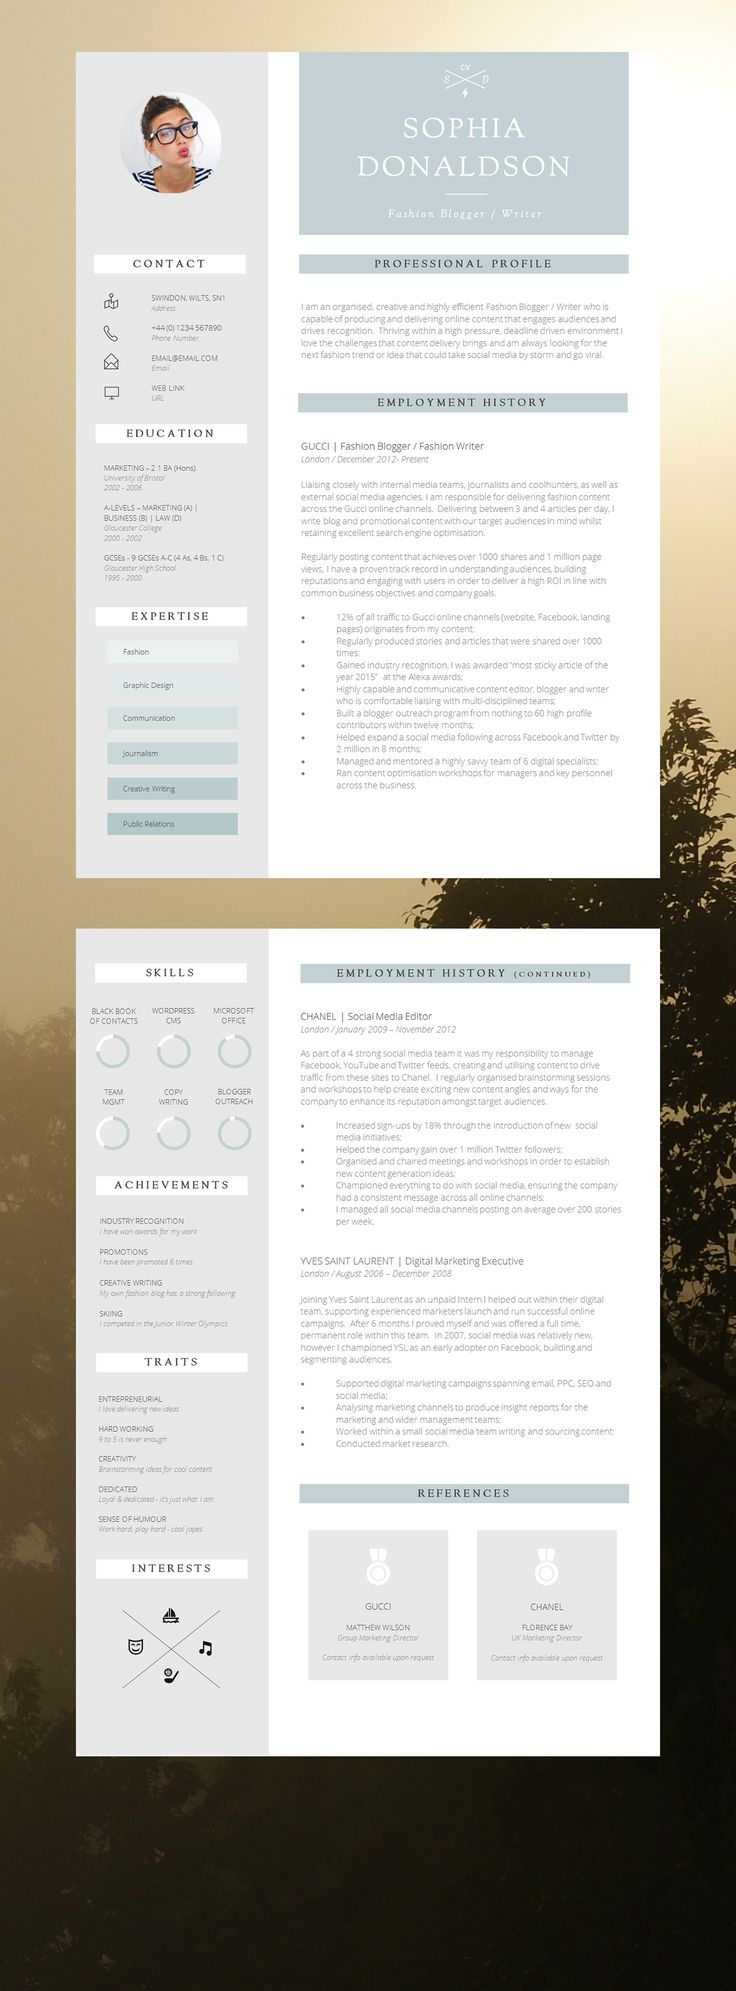 cv template modern cv design dont underestimate the power of a professional - Resume Template Design